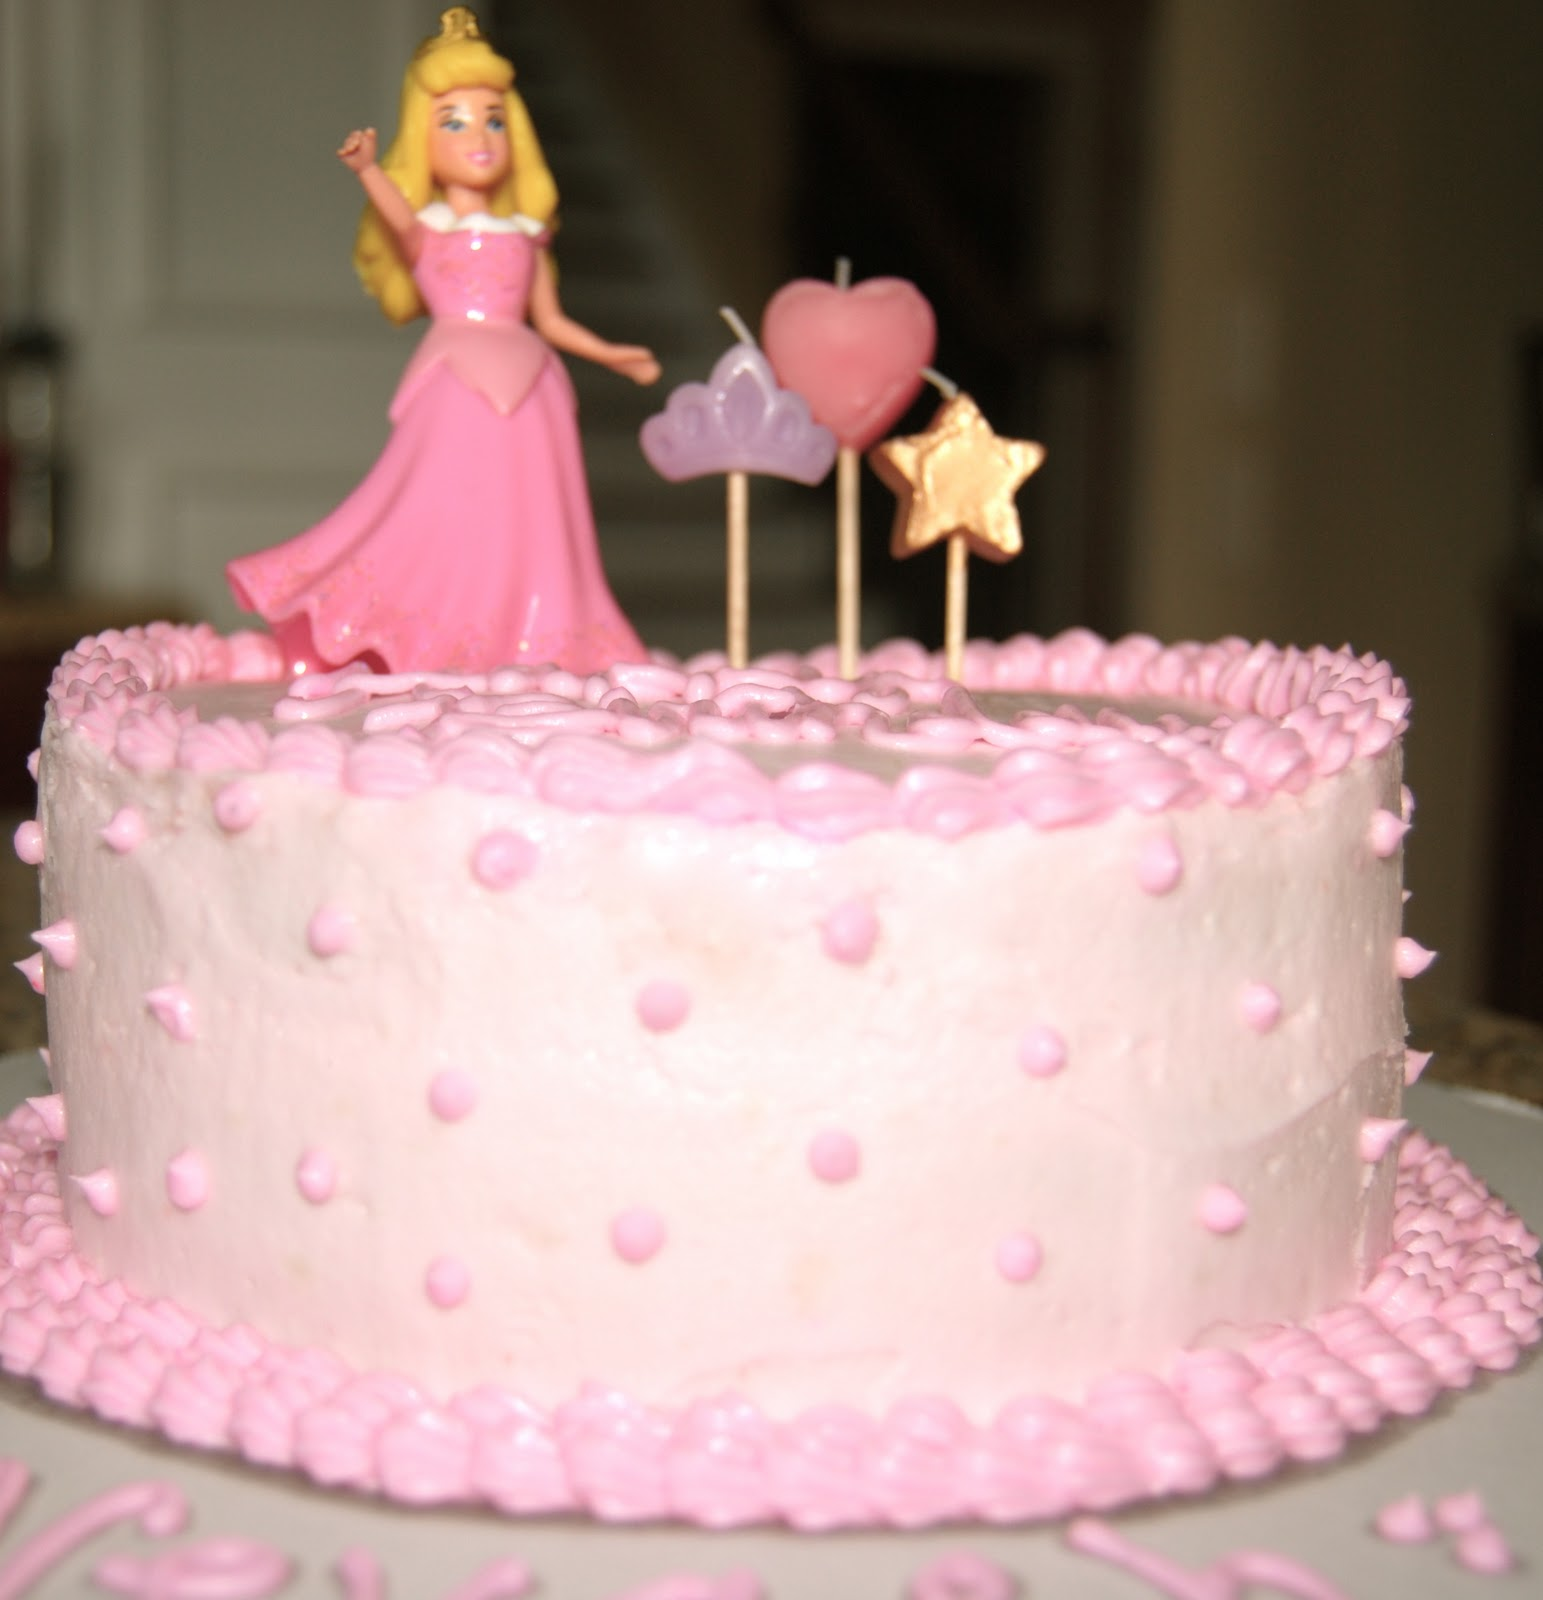 Baked By Ash Sleeping Beauty Cake